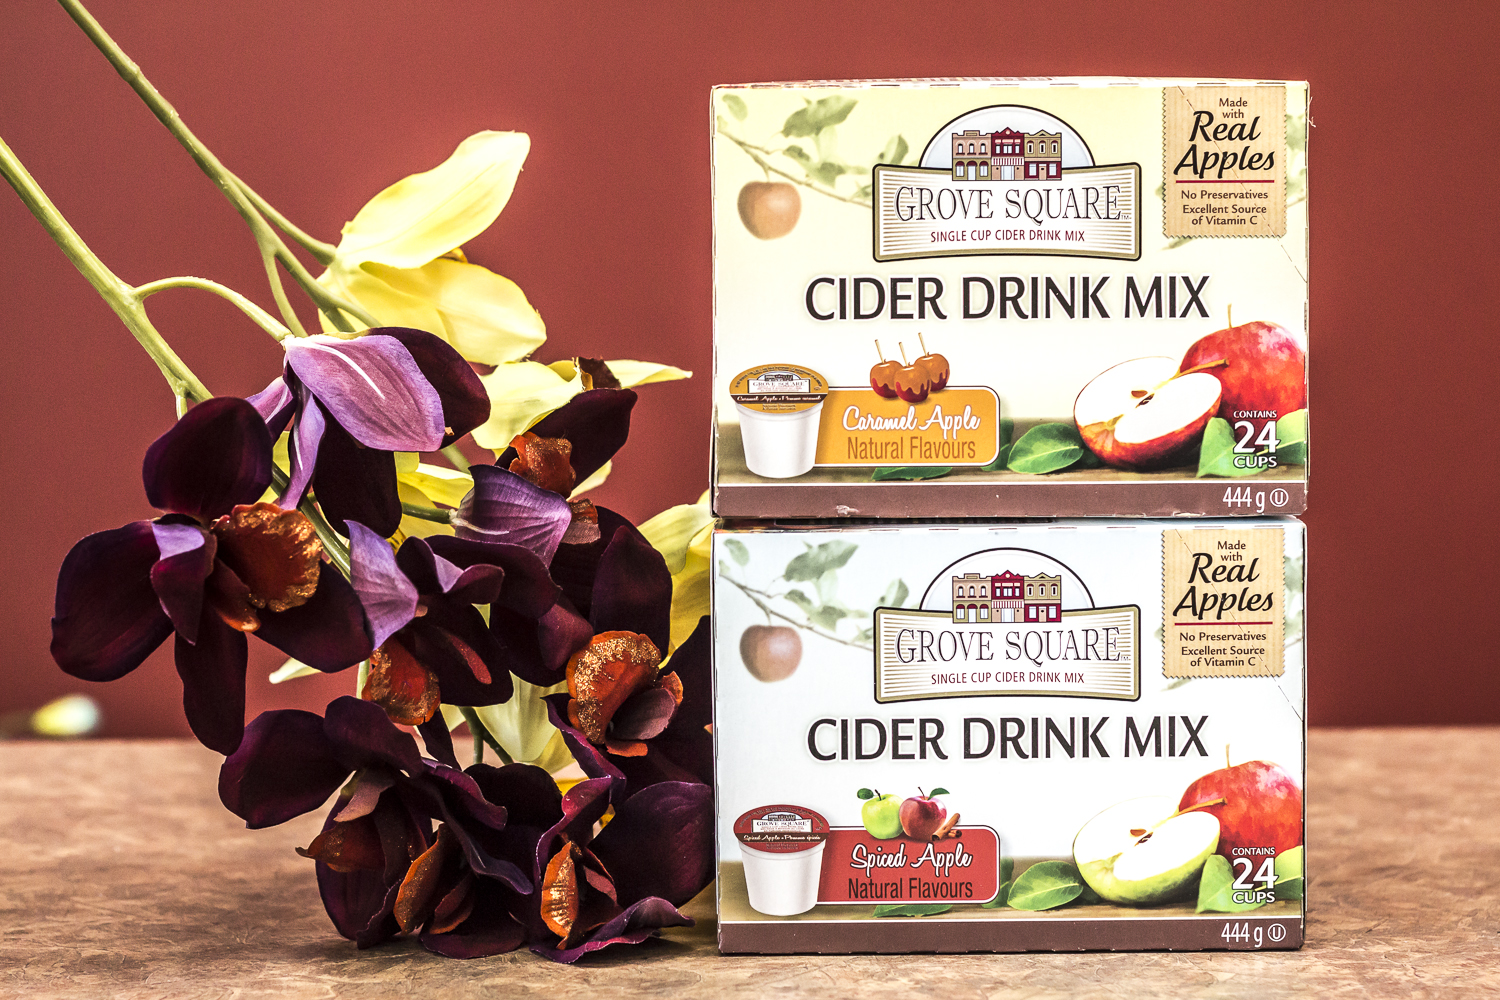 brewville-grove-square-cider-drink-mix